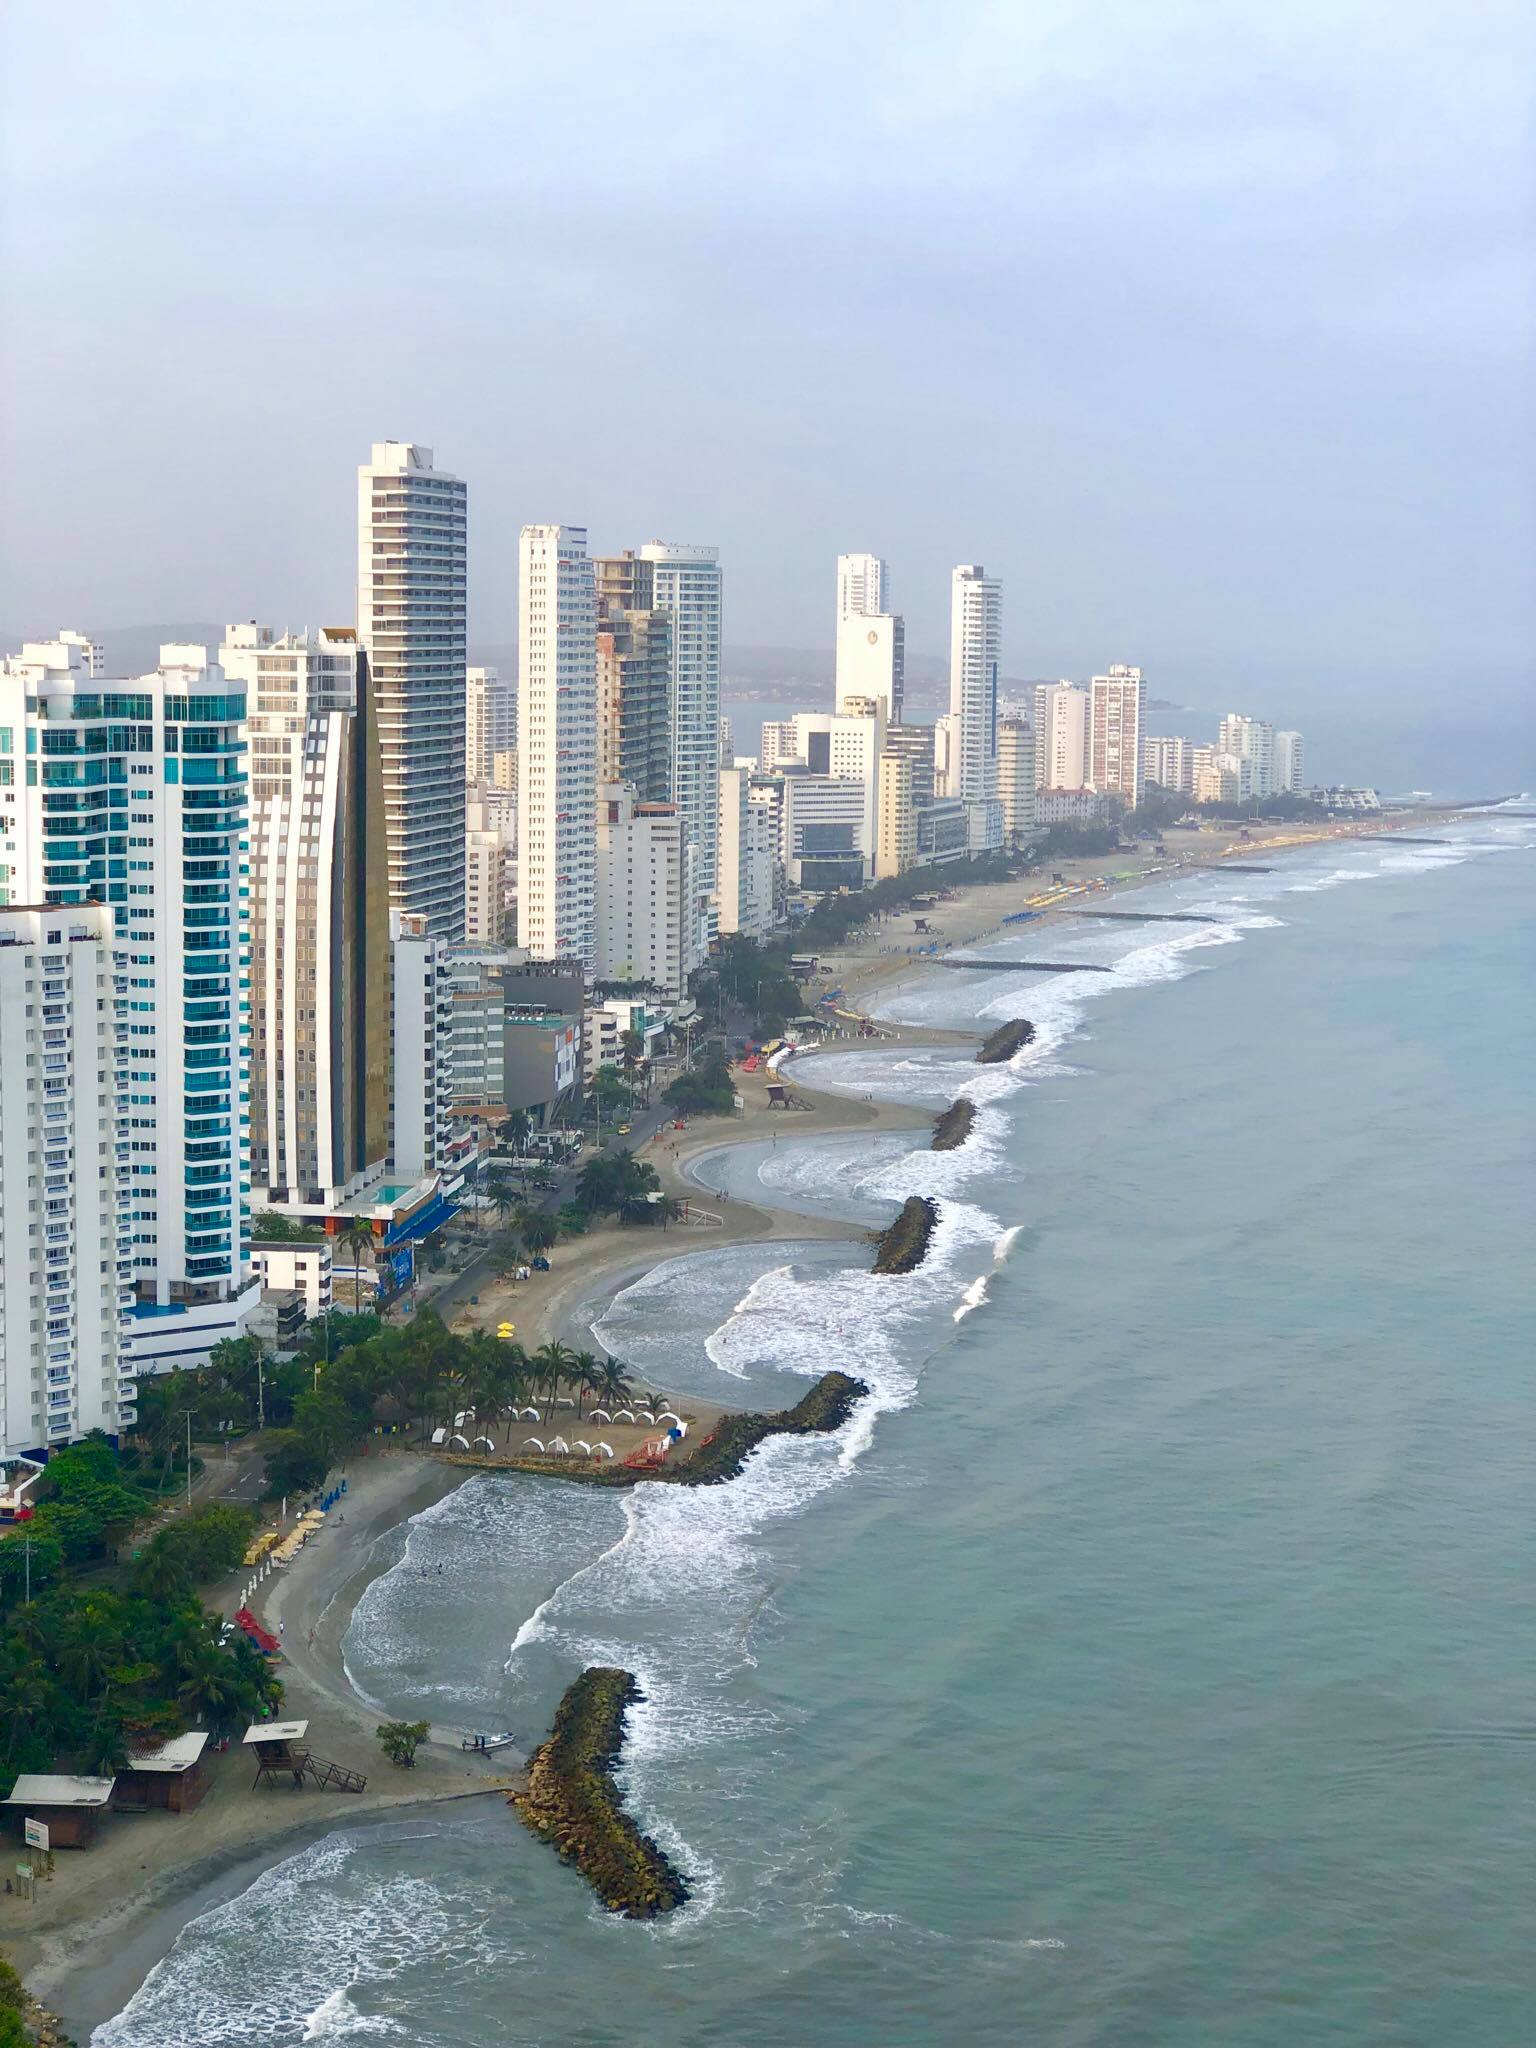 Kach Solo Travels in 2019 Arrived in Cartagena, Colombia3.jpg